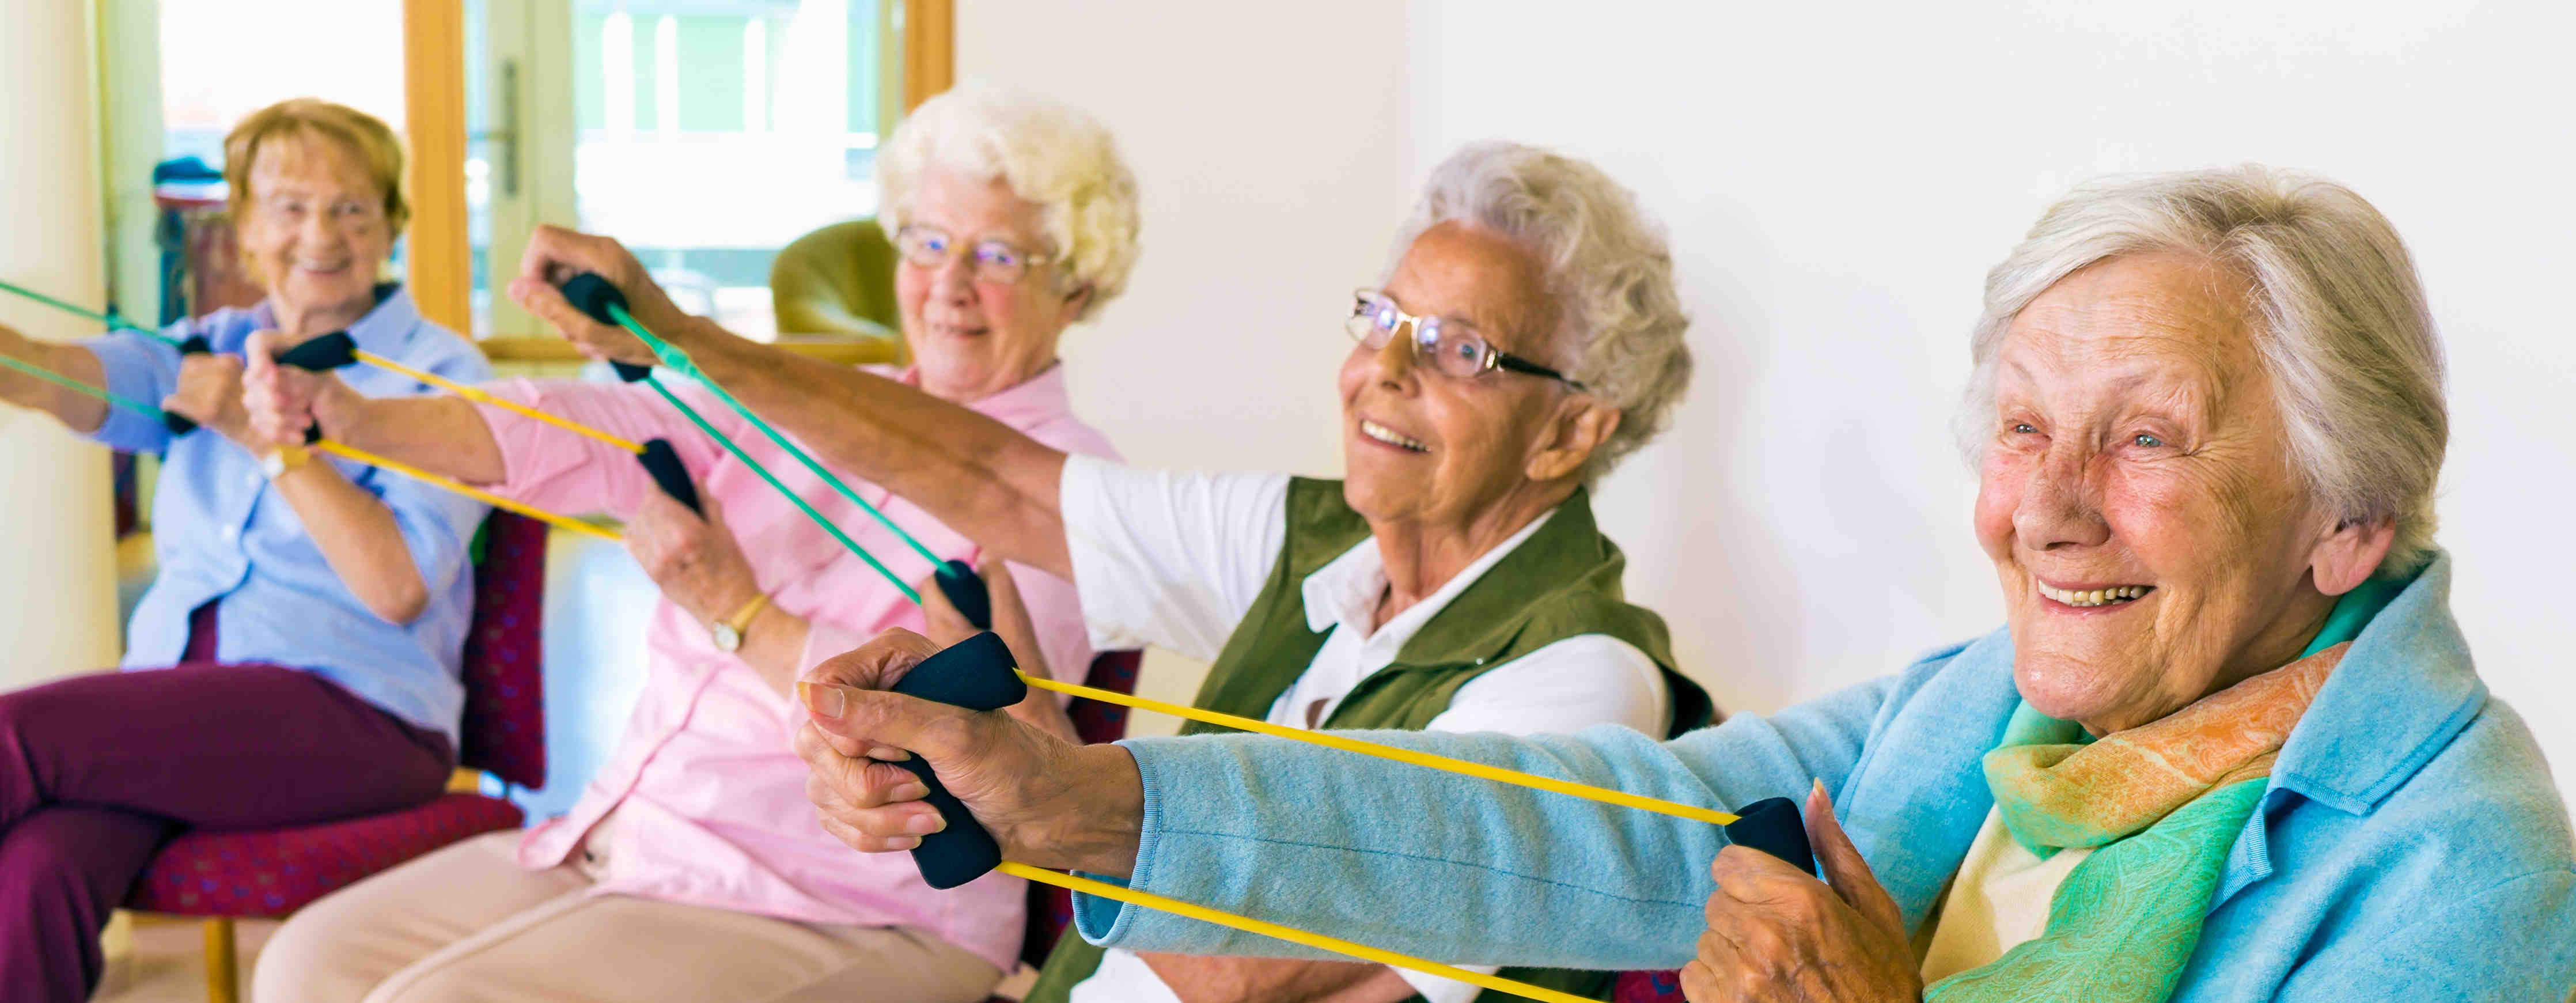 Elderly women use elastic bands for stroke rehab